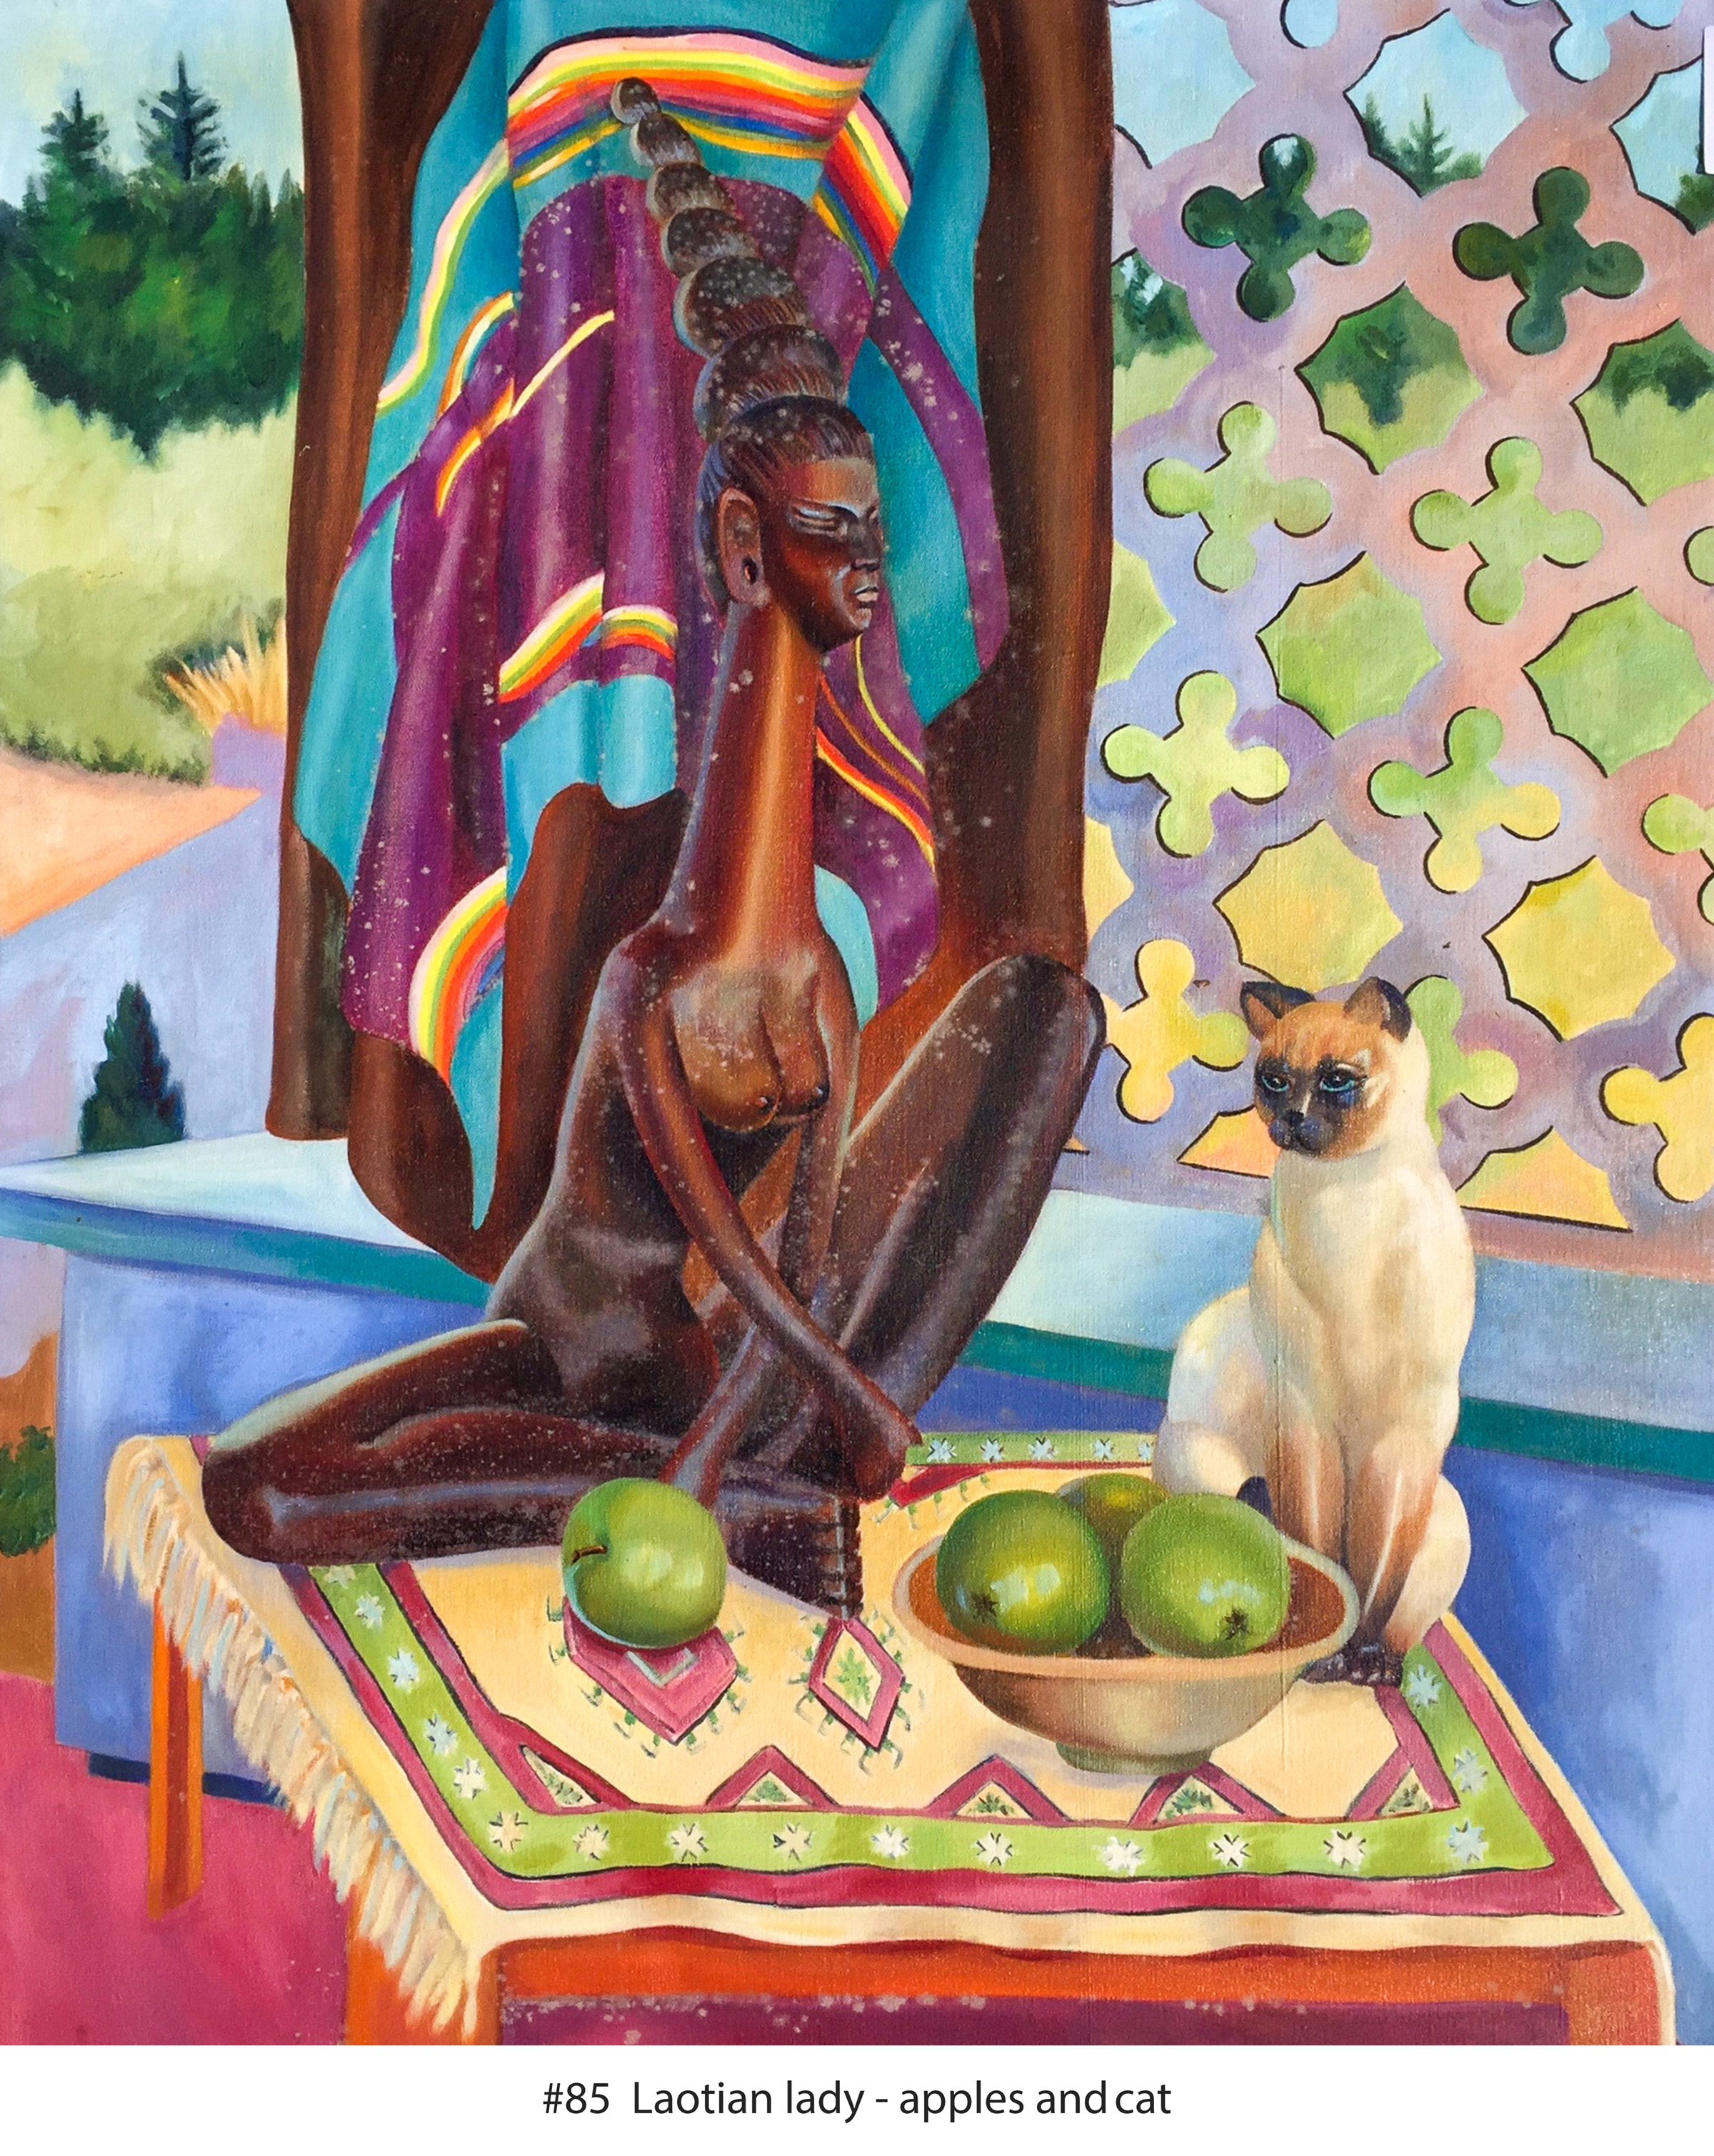 Laotian lady - apples and cat